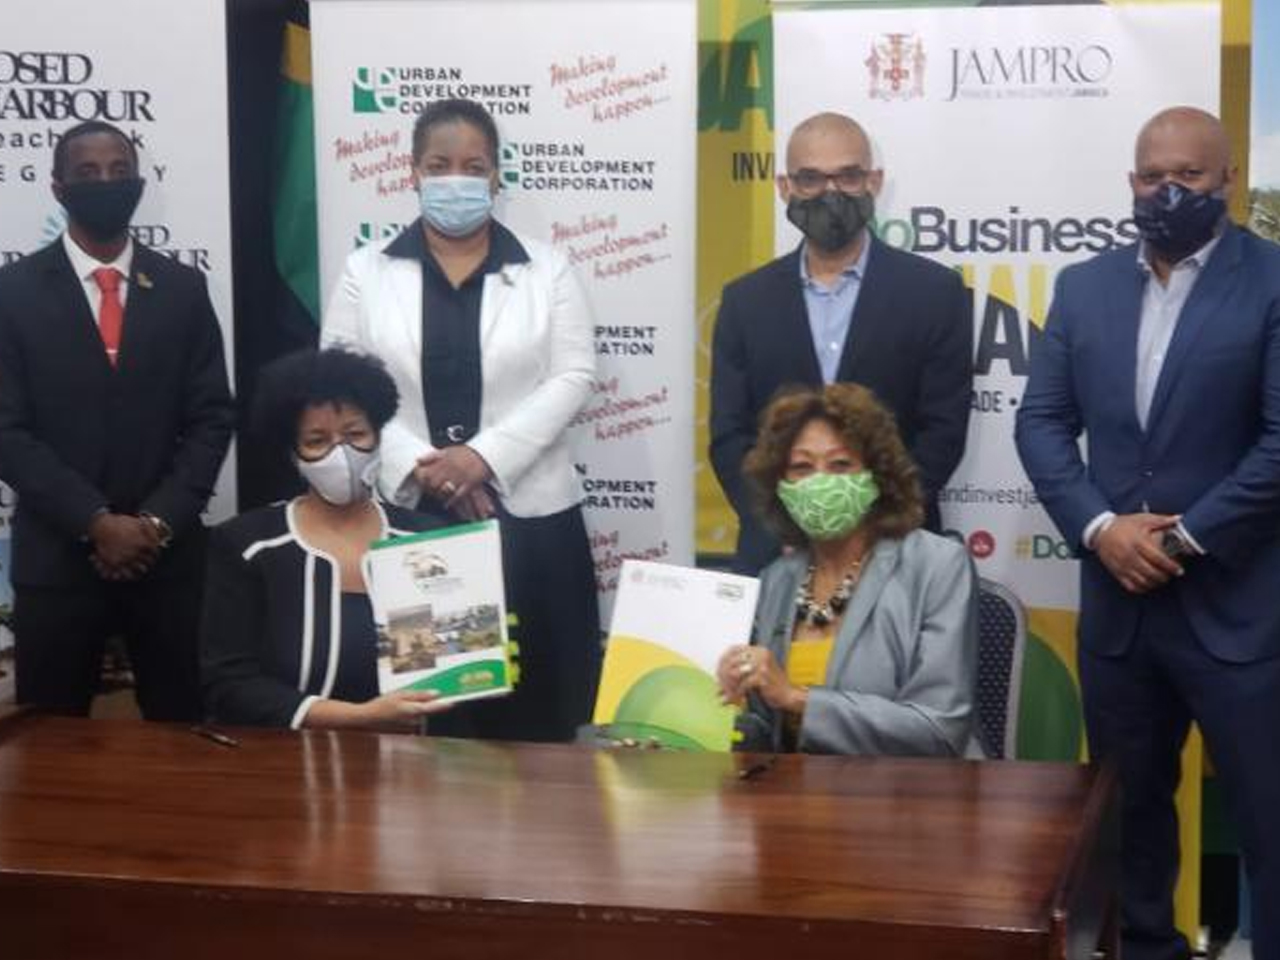 INVESTMENT COLLABORATION | JAMPRO and UDC sign MOU